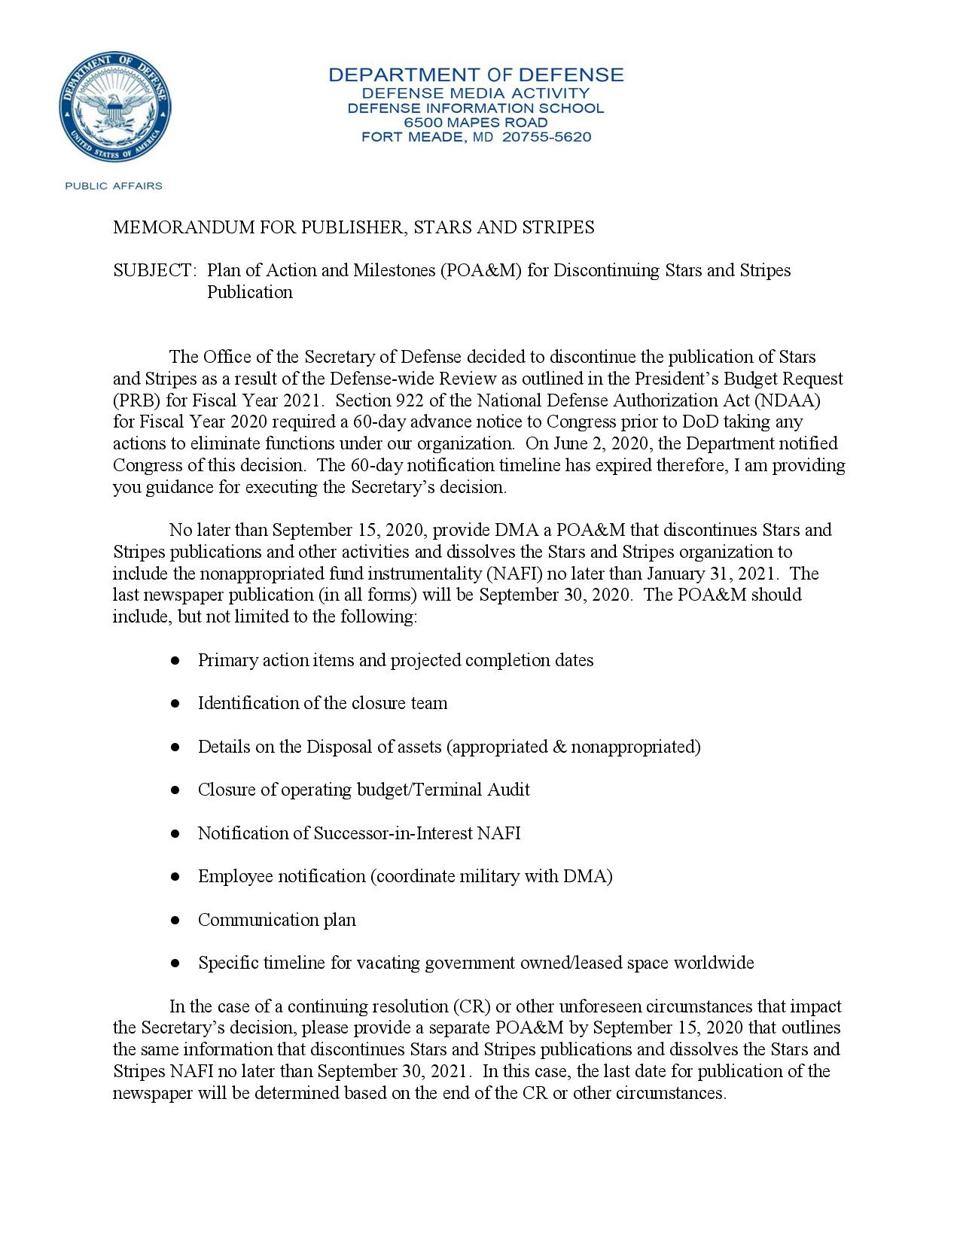 DOD memo to Stars and Stripes